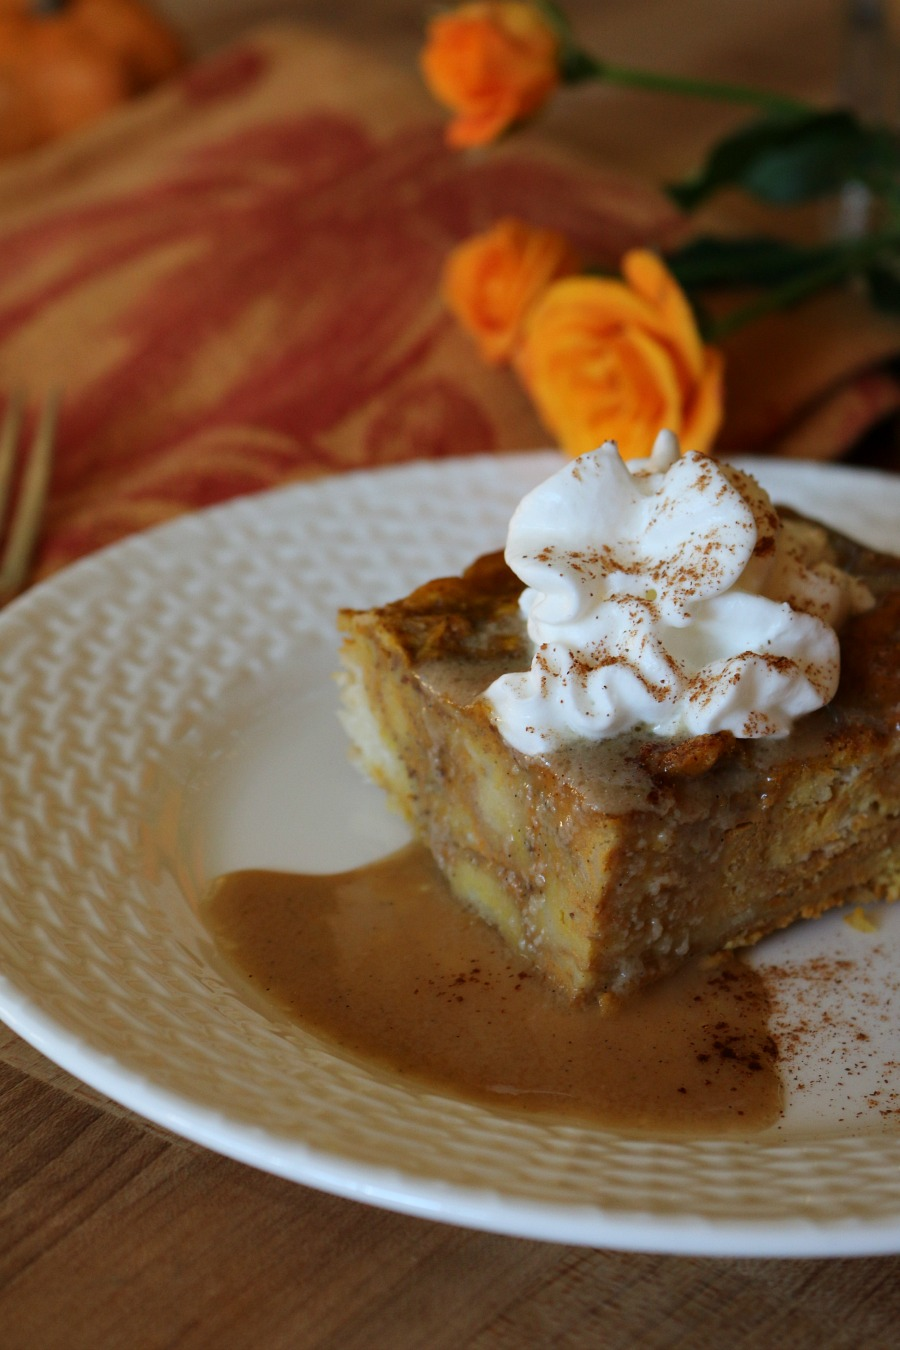 The most amazing Thanksgiving Dessert - Pumpkin Bread Pudding with Bourbon Sauce and tiny vanilla beans!